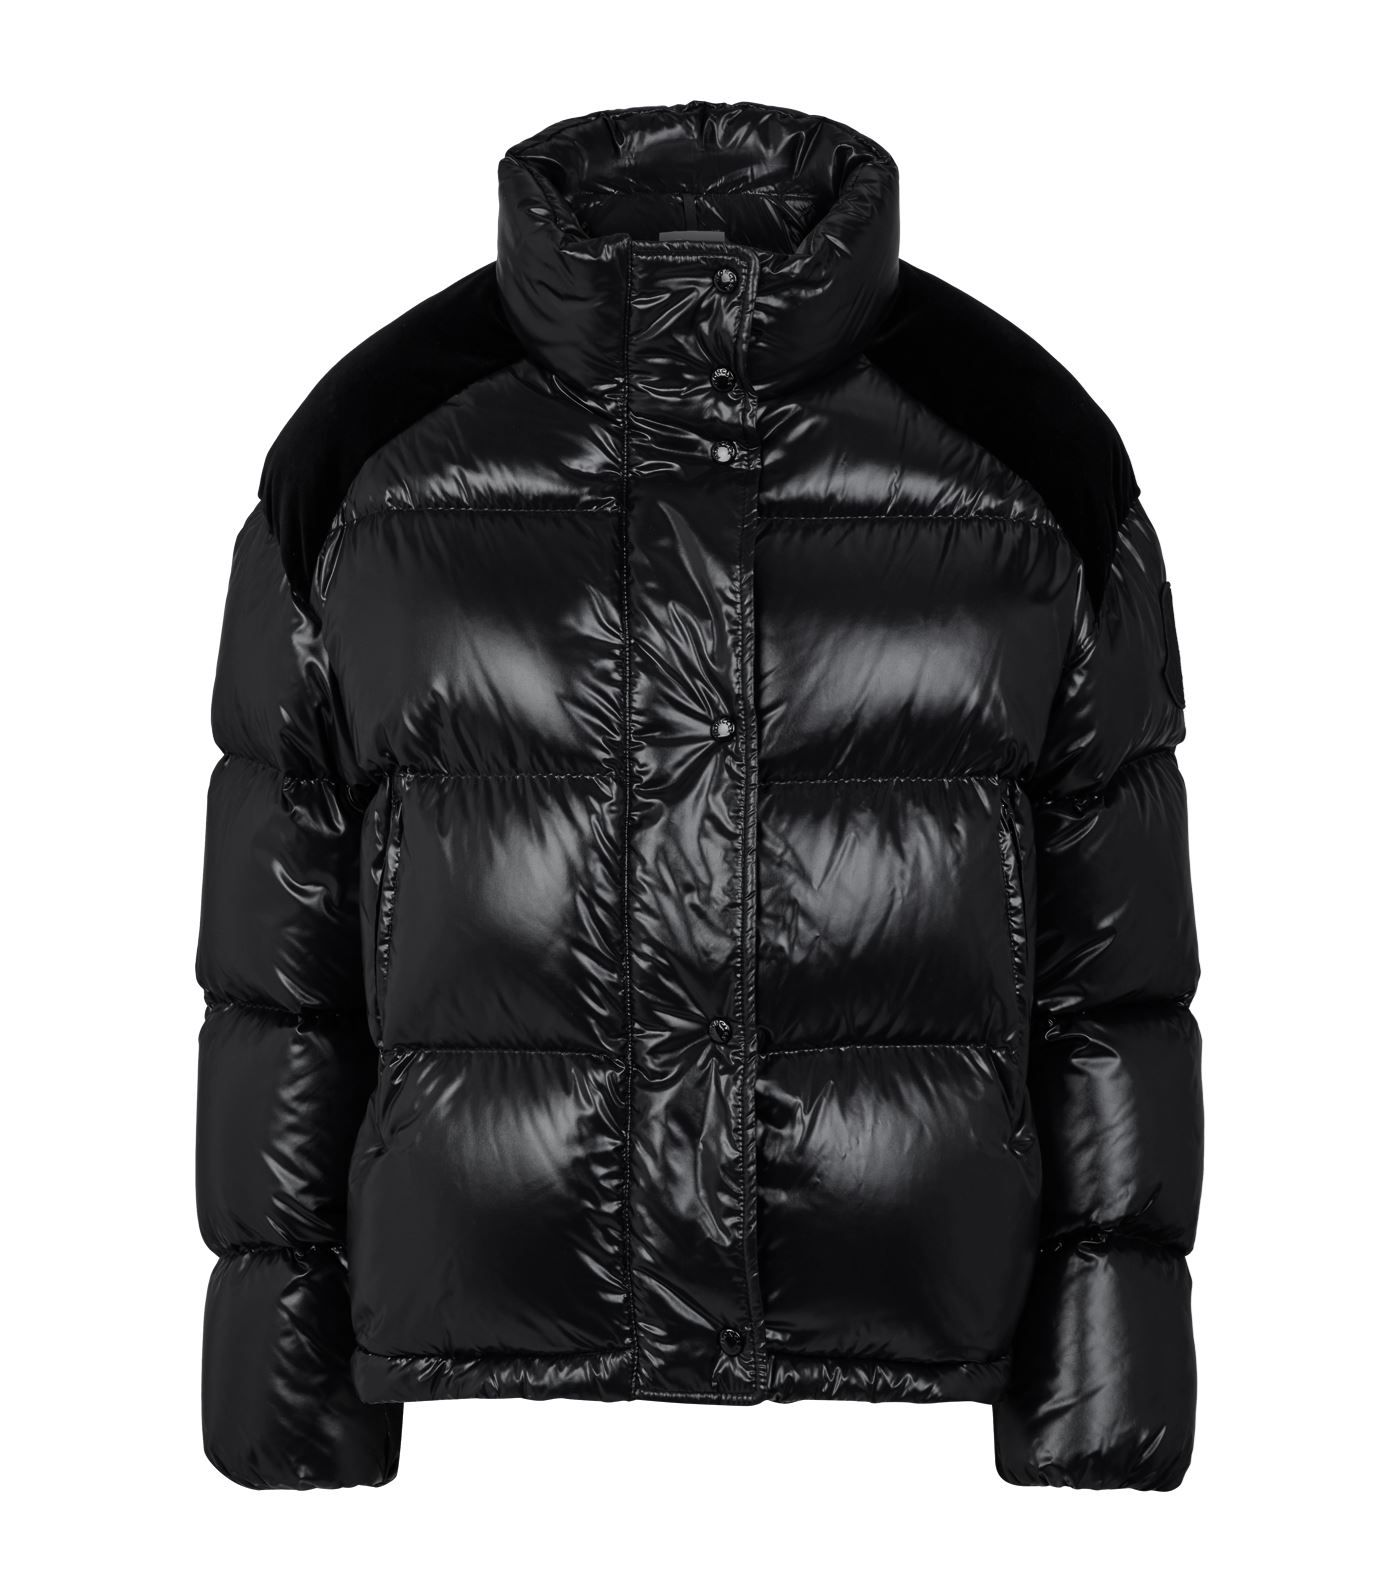 Chouette Padded Down Jacket Moncler, Jackets, Black